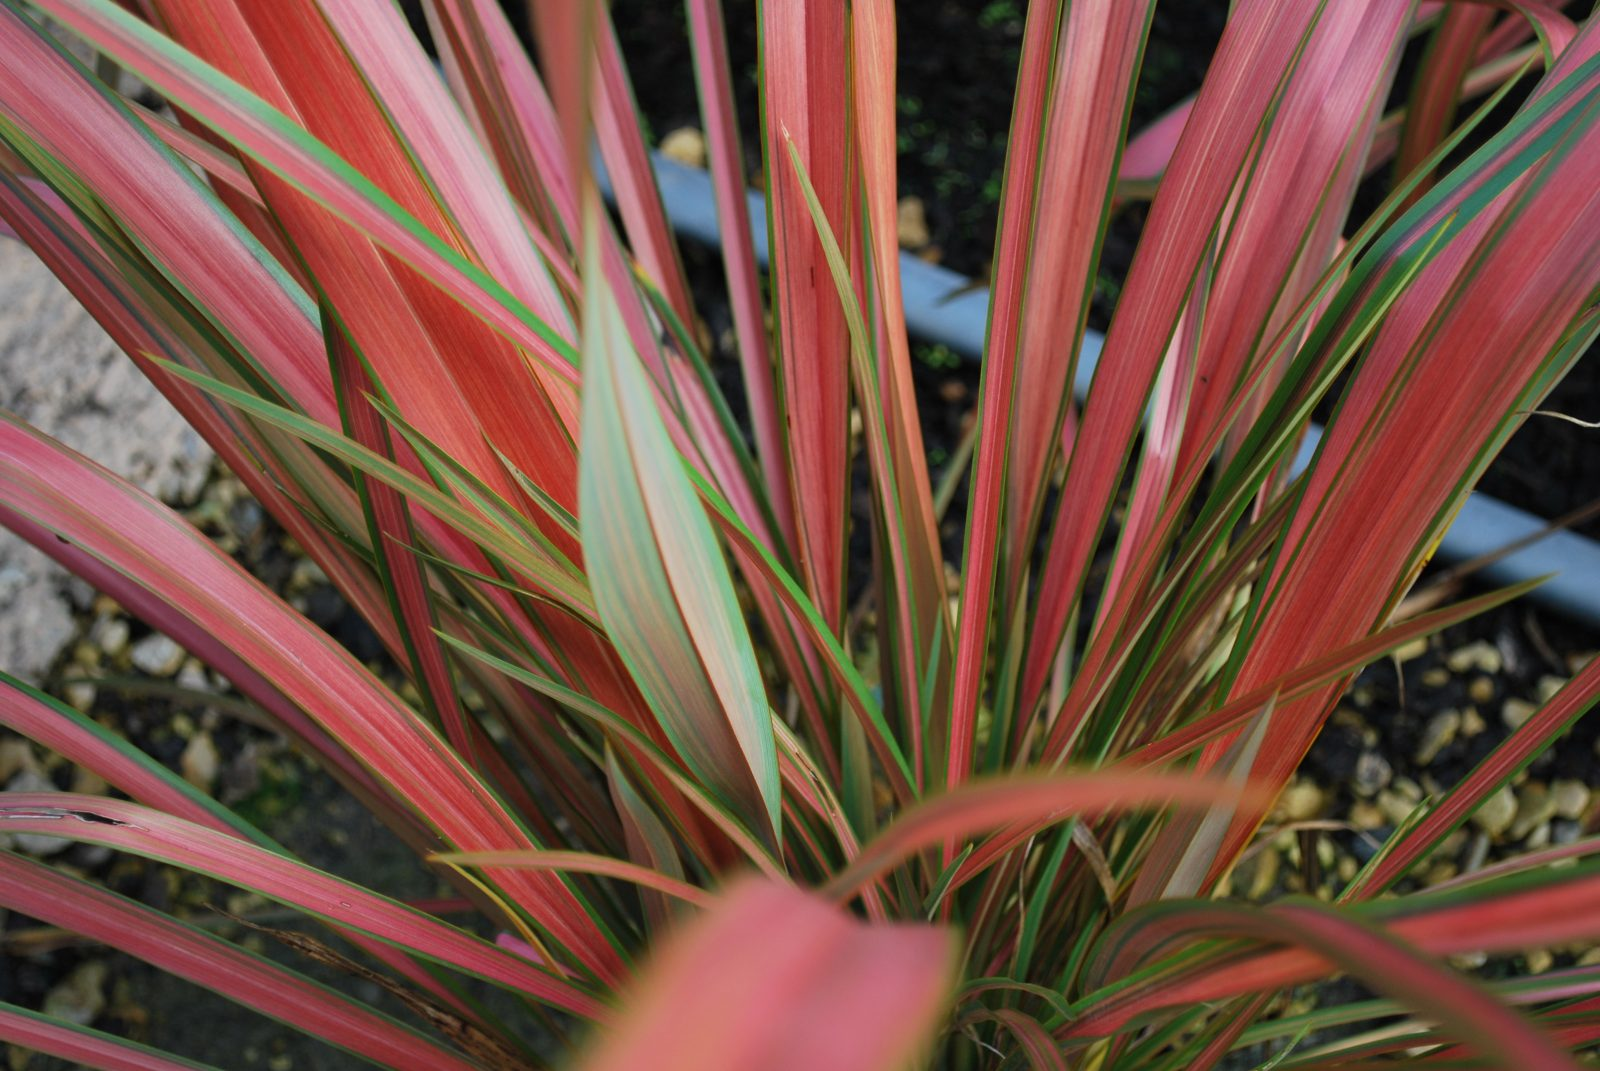 Picture of Live Fiesta New Zealand Flax aka Phormium Jester Shrubs Plant Fit 5 Gallon Pot